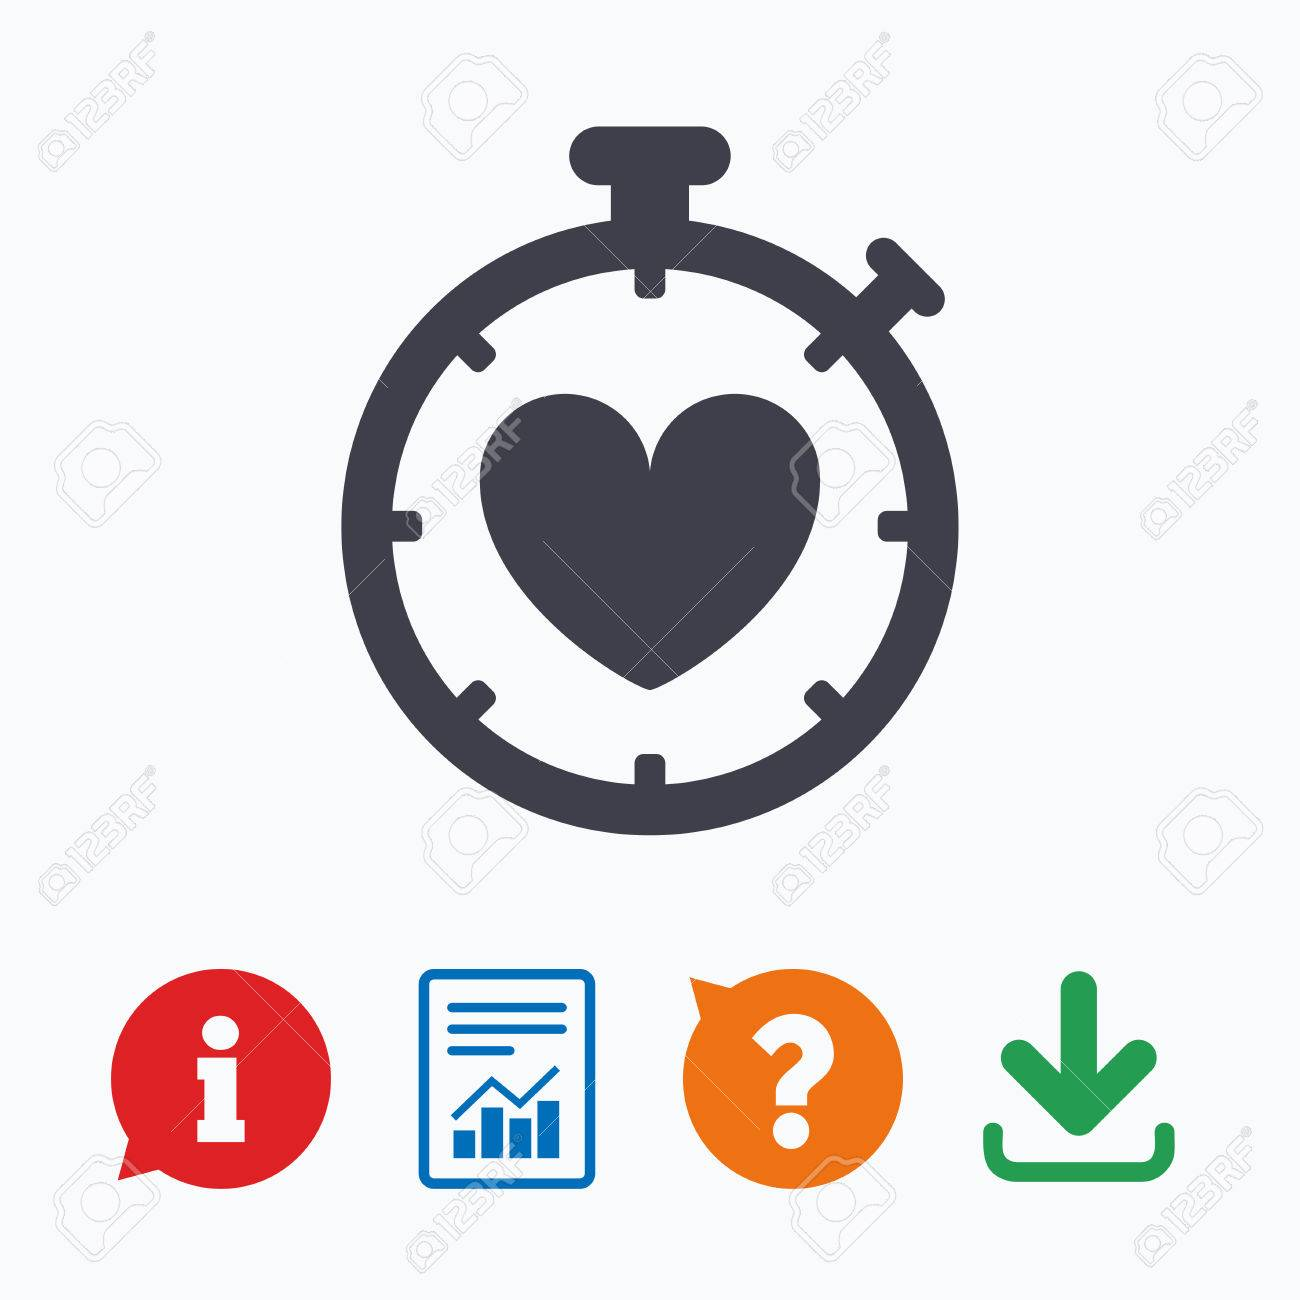 Heart Timer sign icon  Stopwatch symbol  Heartbeat palpitation